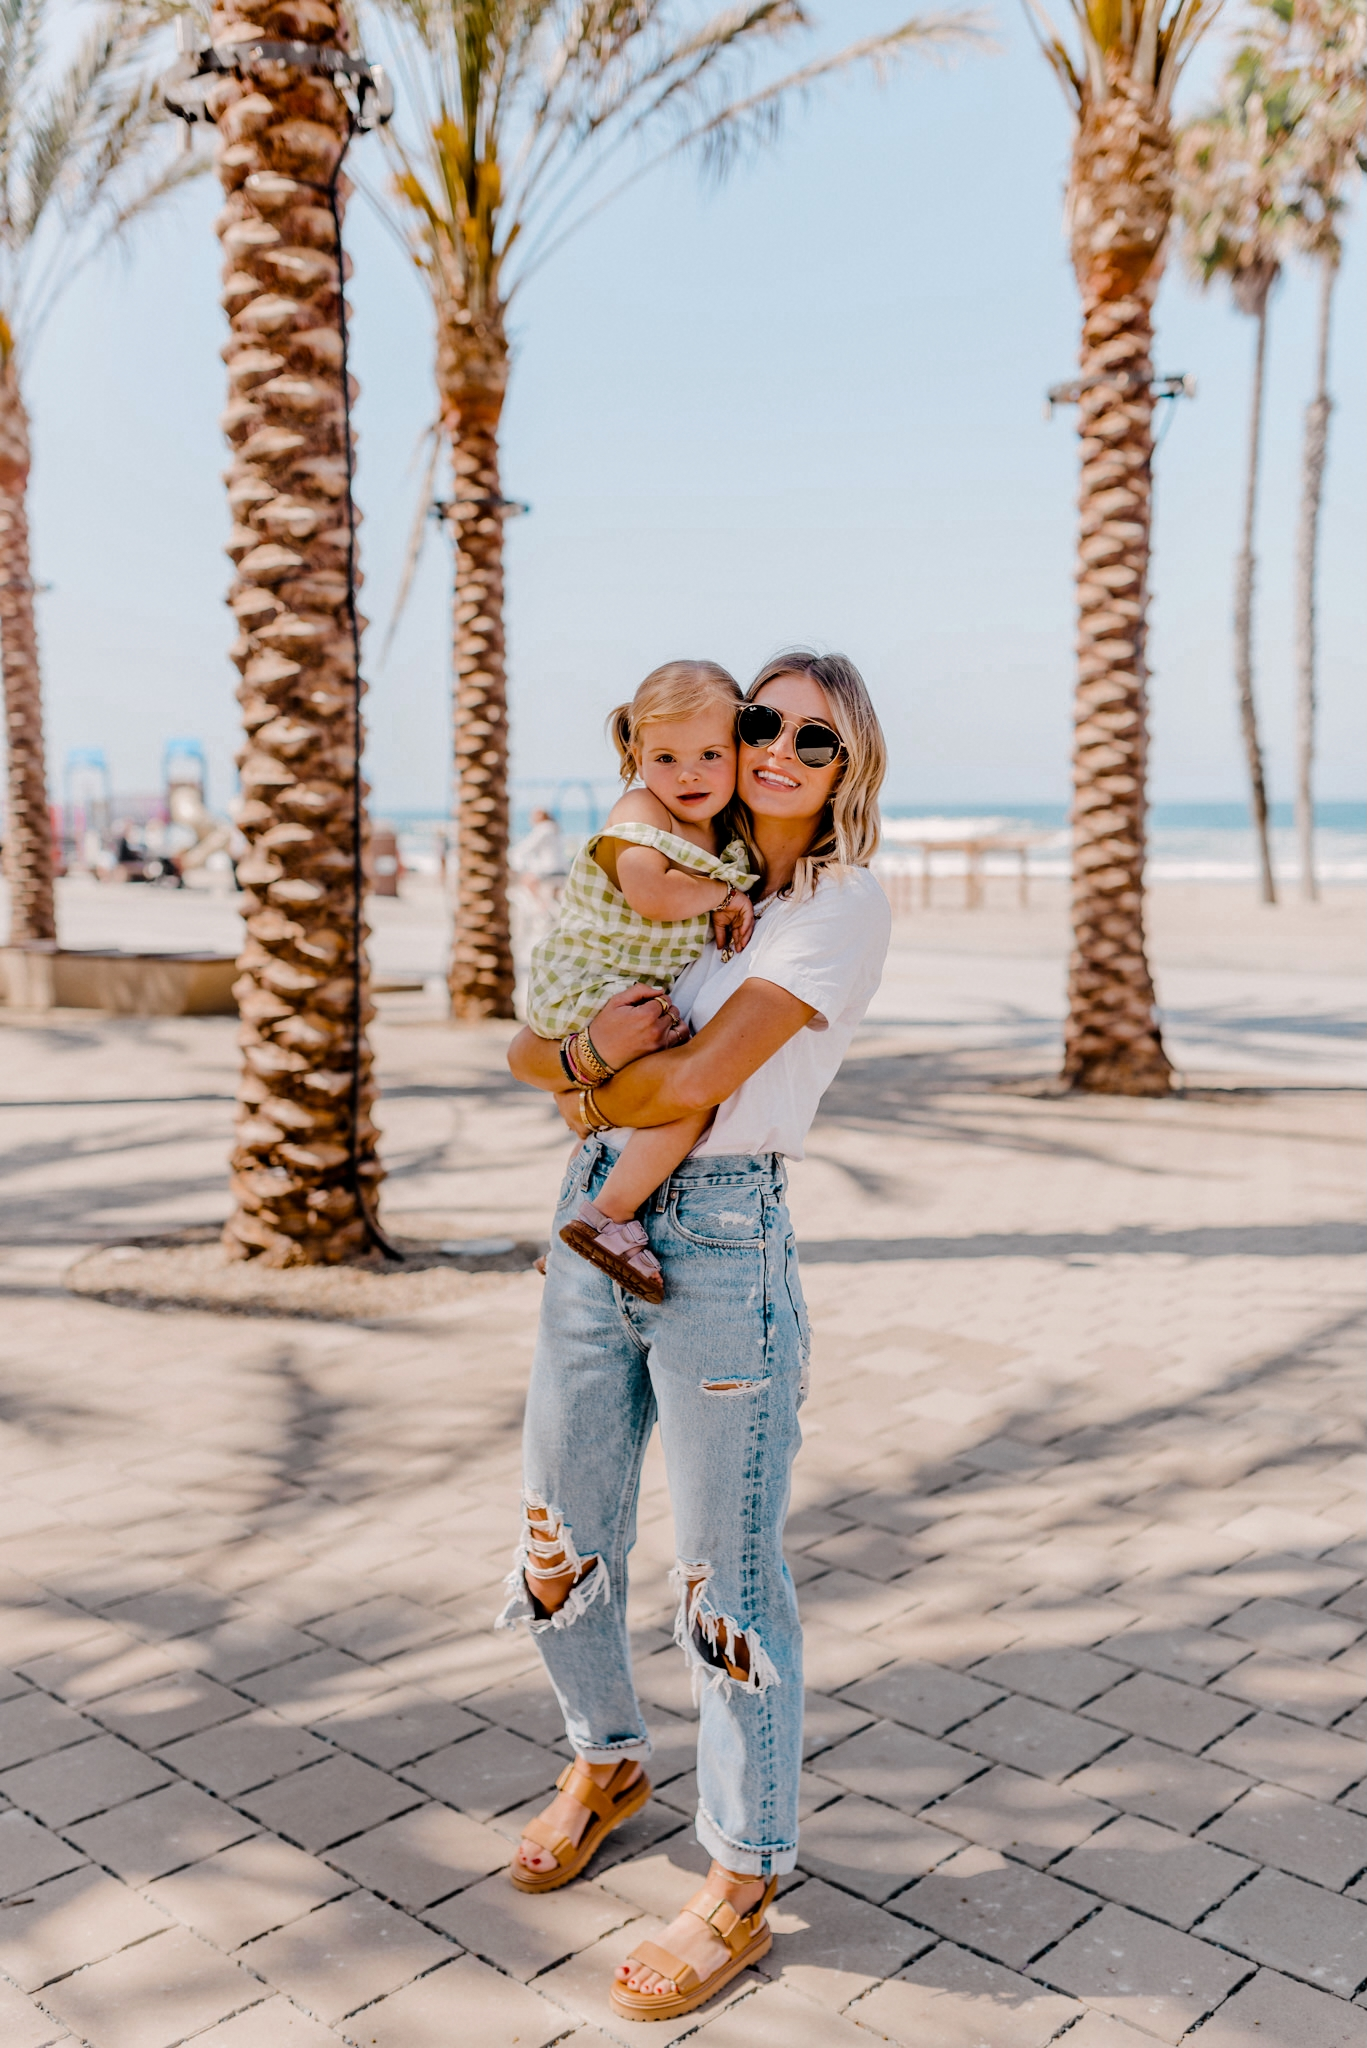 mom carrying her child and share KIDs NEW SUMMER ARRIVALS AND SWIMSUITS